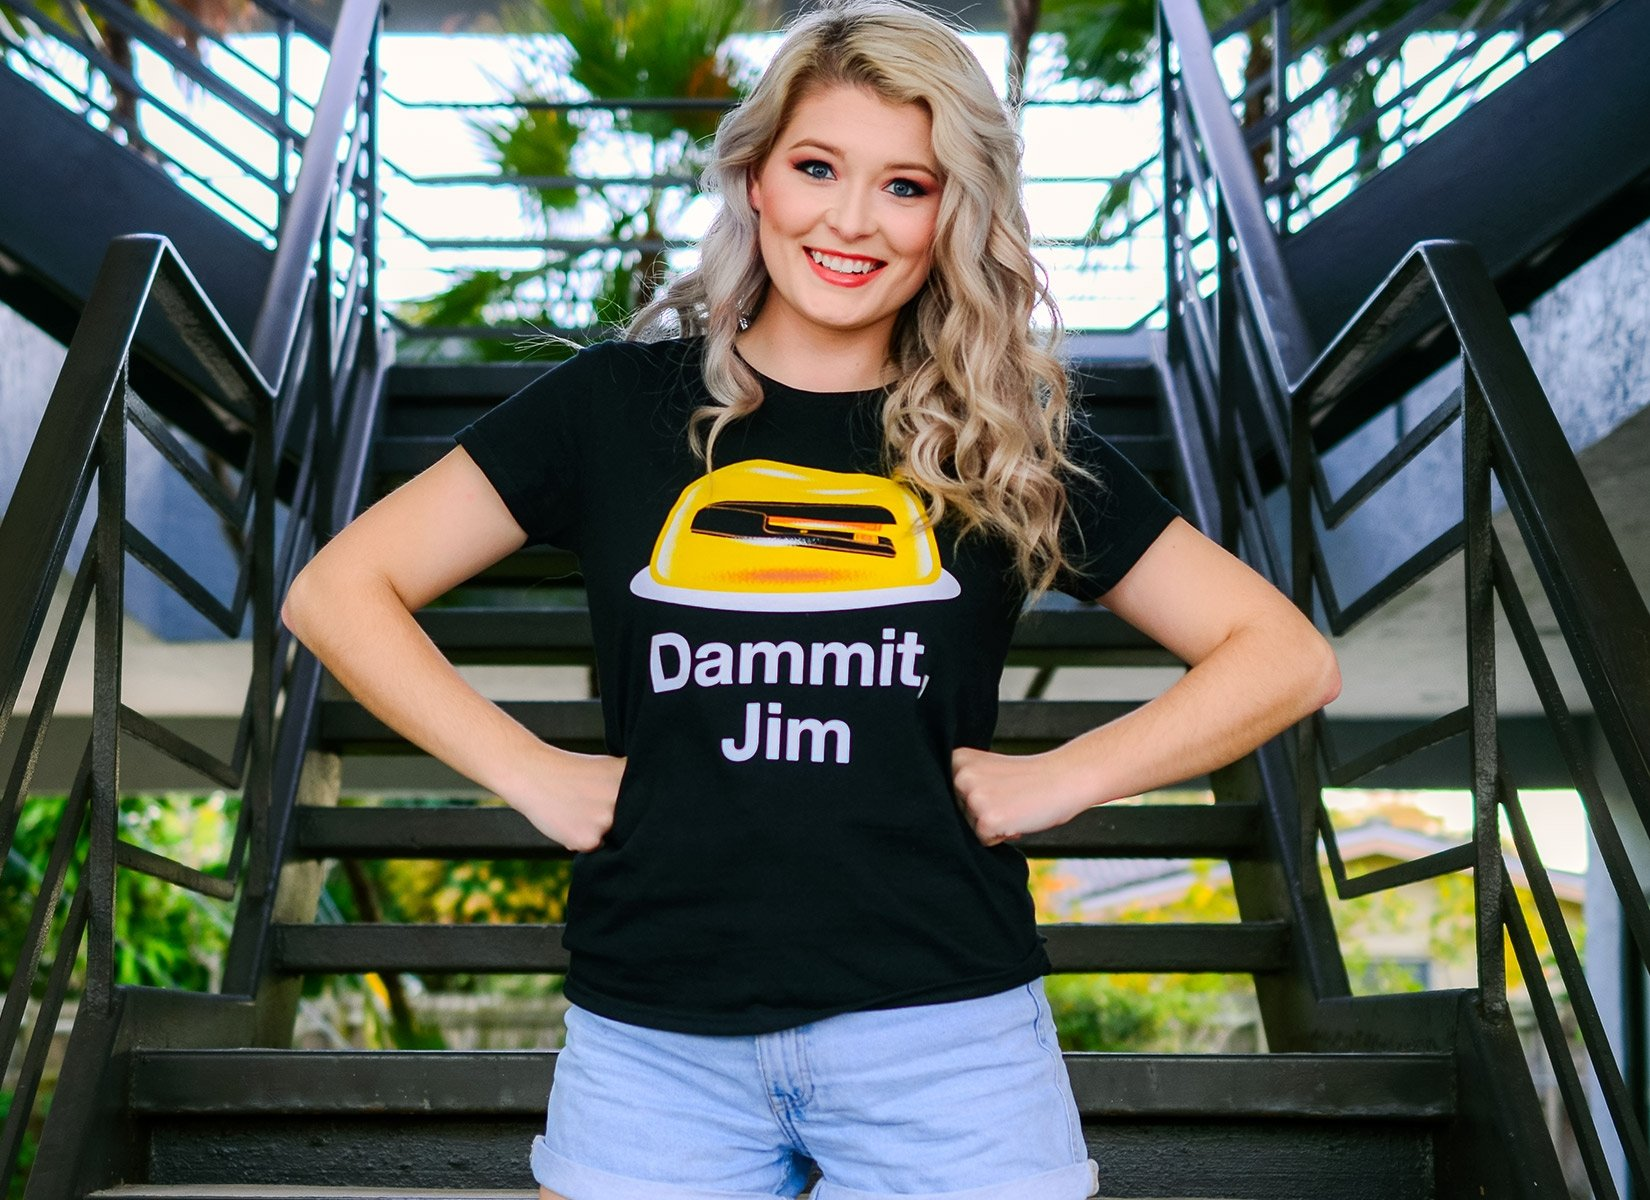 Dammit, Jim on Womens T-Shirt